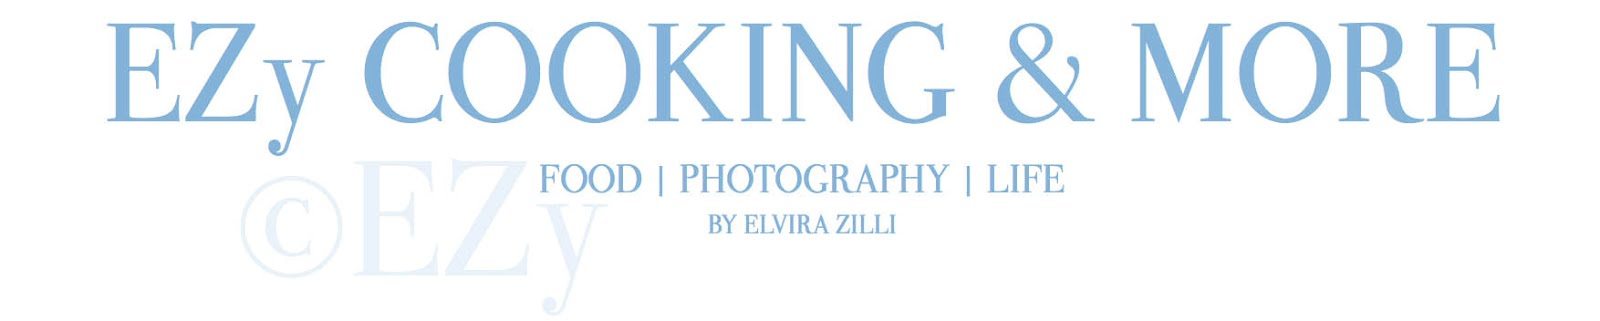 EZy cooking & more by Elvira Zilli